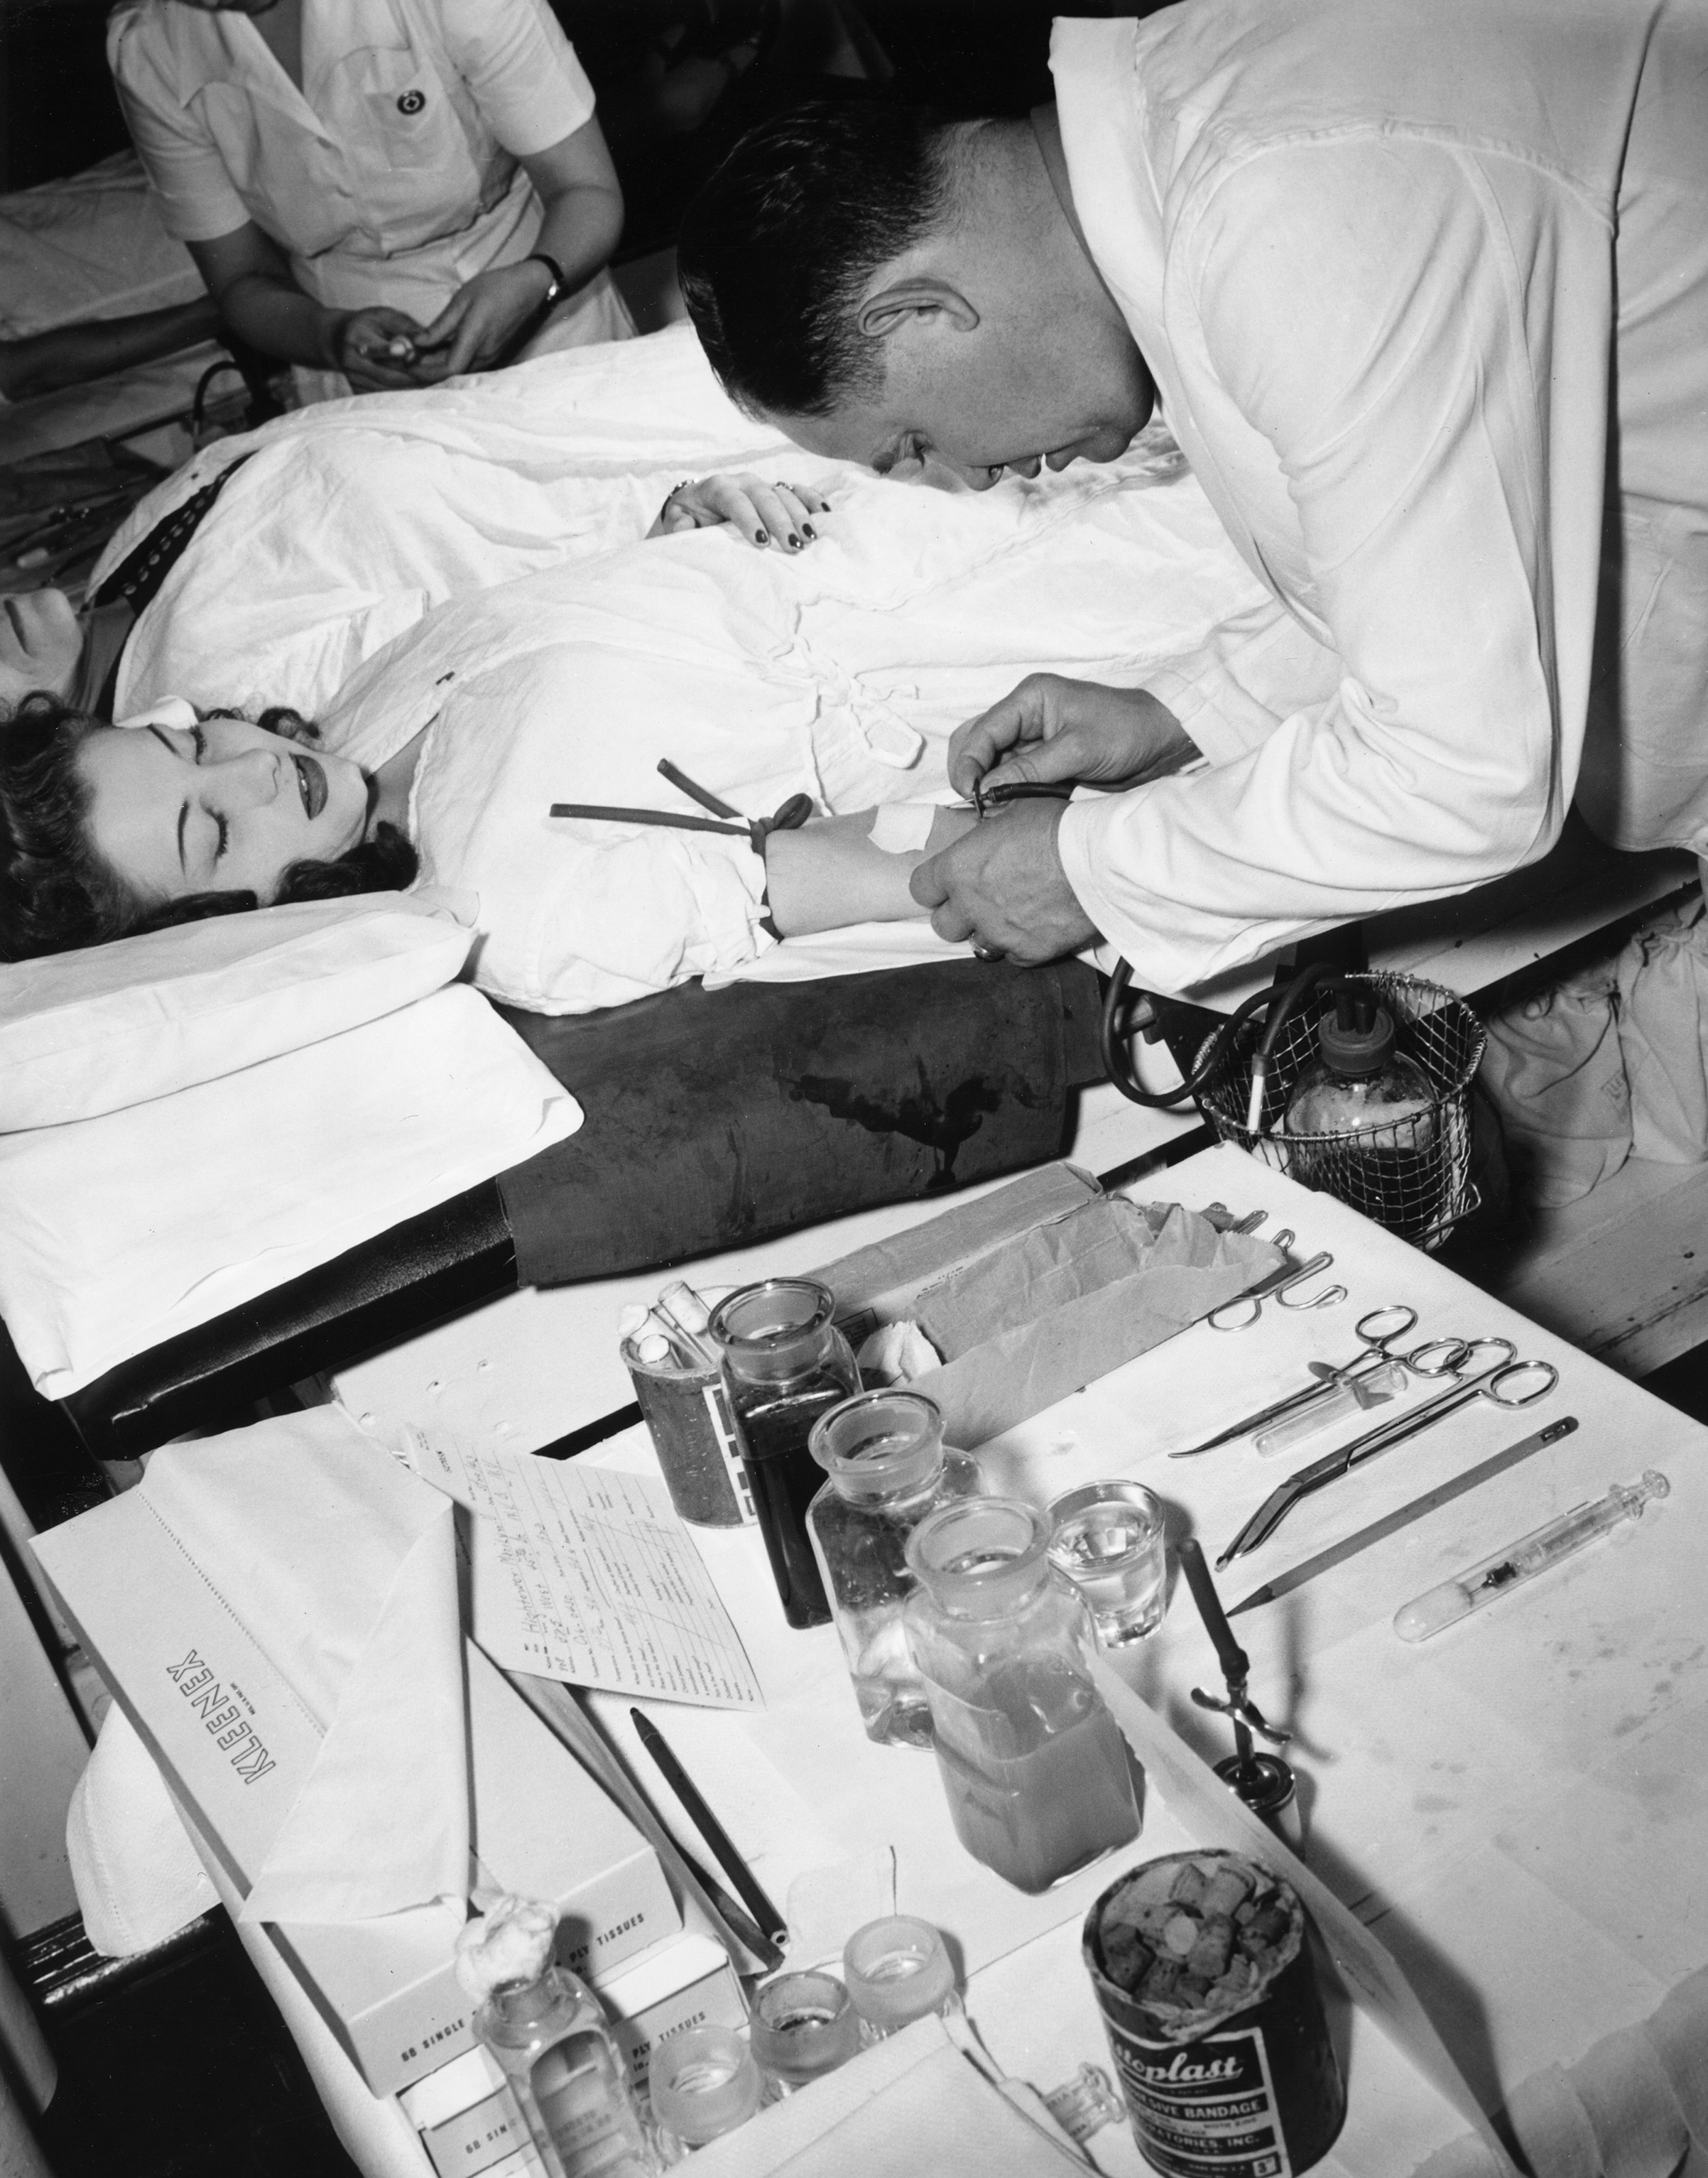 Woman donating blood to the Red Cross Blood Bank in New York City in 1943 during World War II.